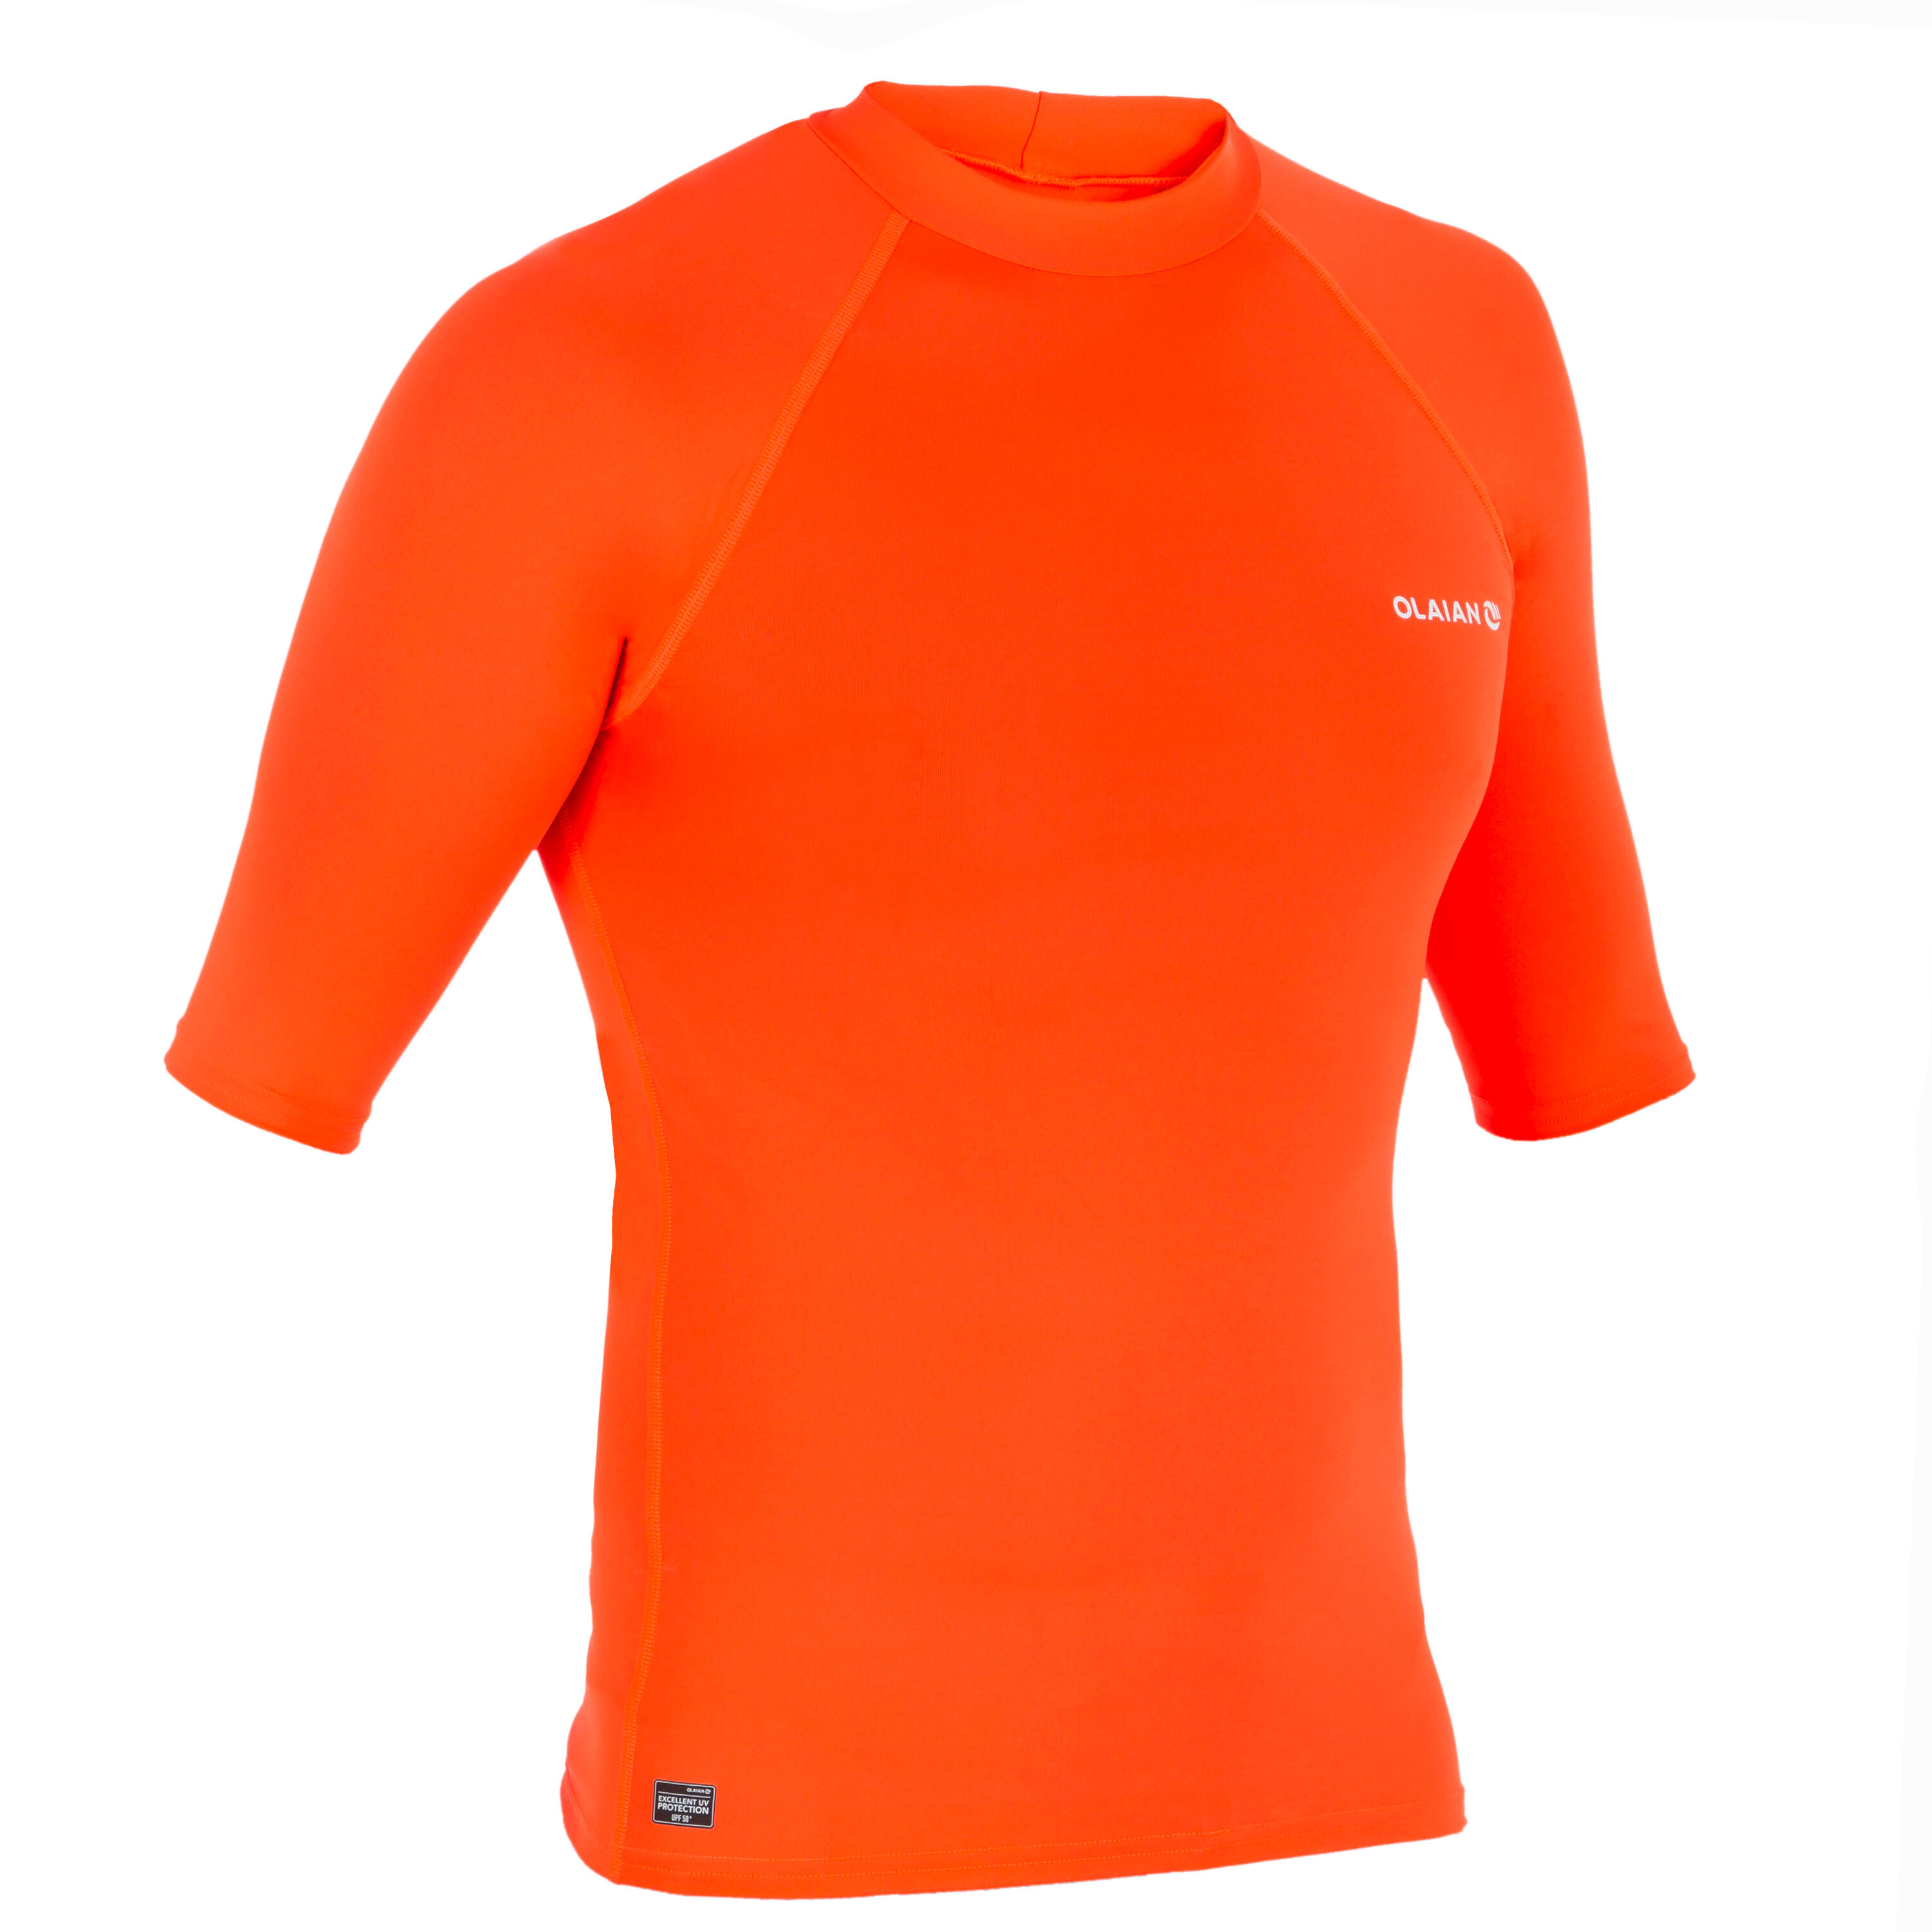 Tricou Surf Anti-UV100 Bărbați